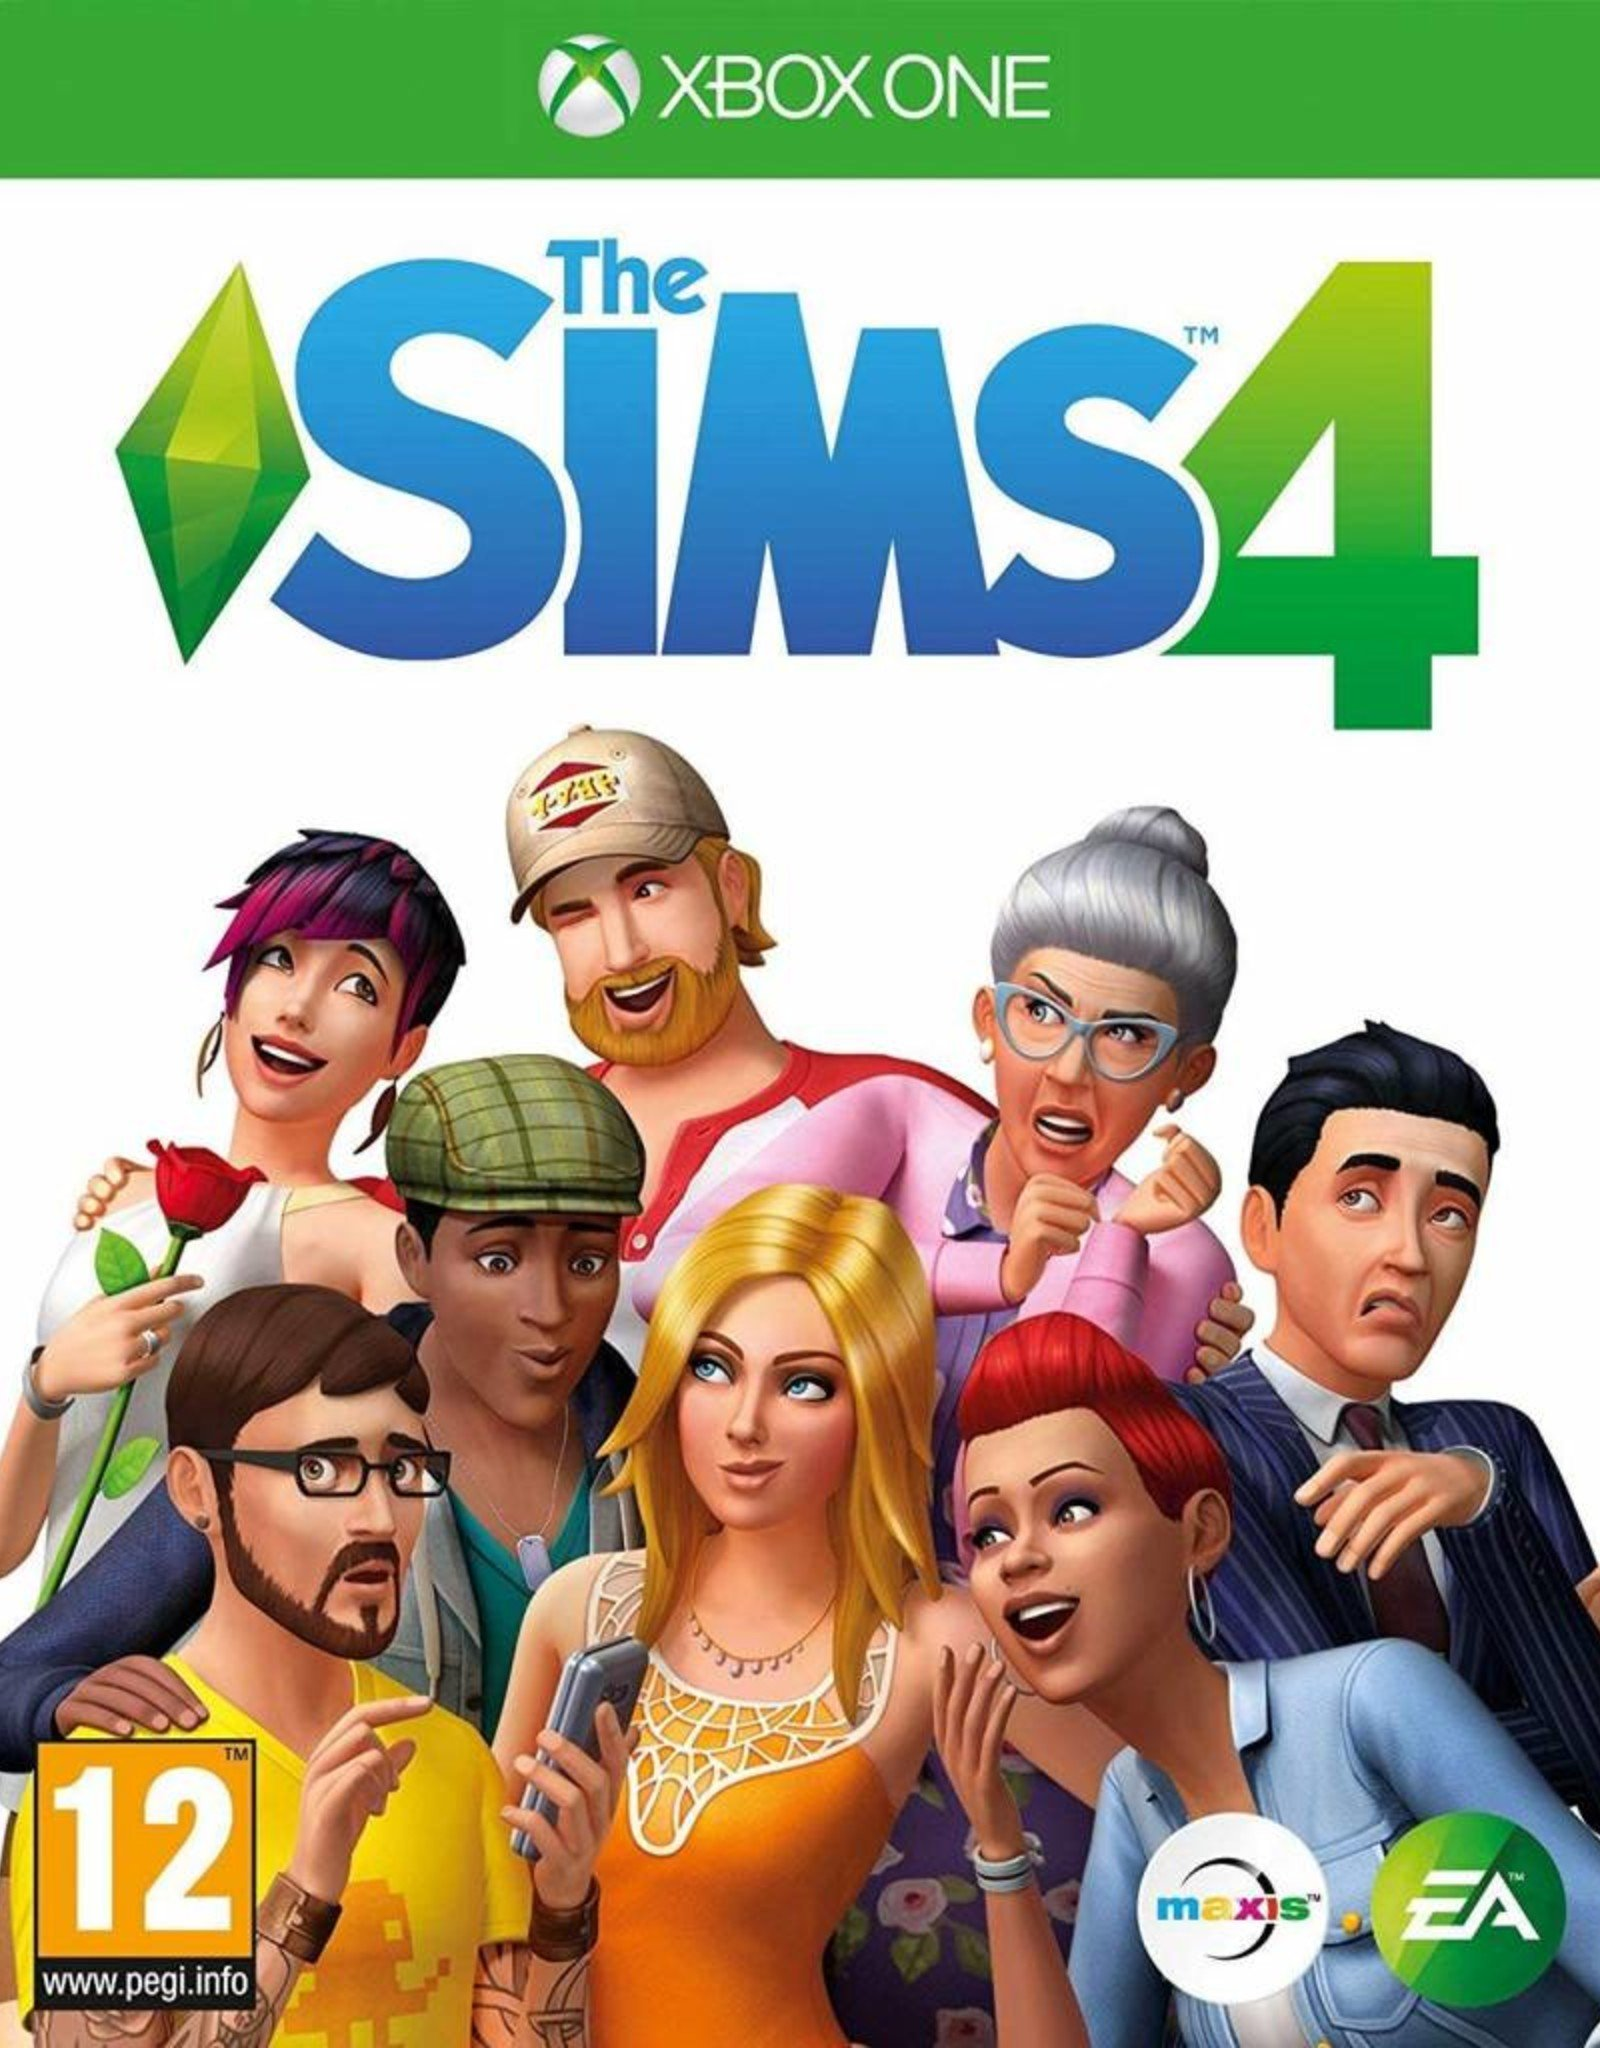 The Sims 4 (UK)